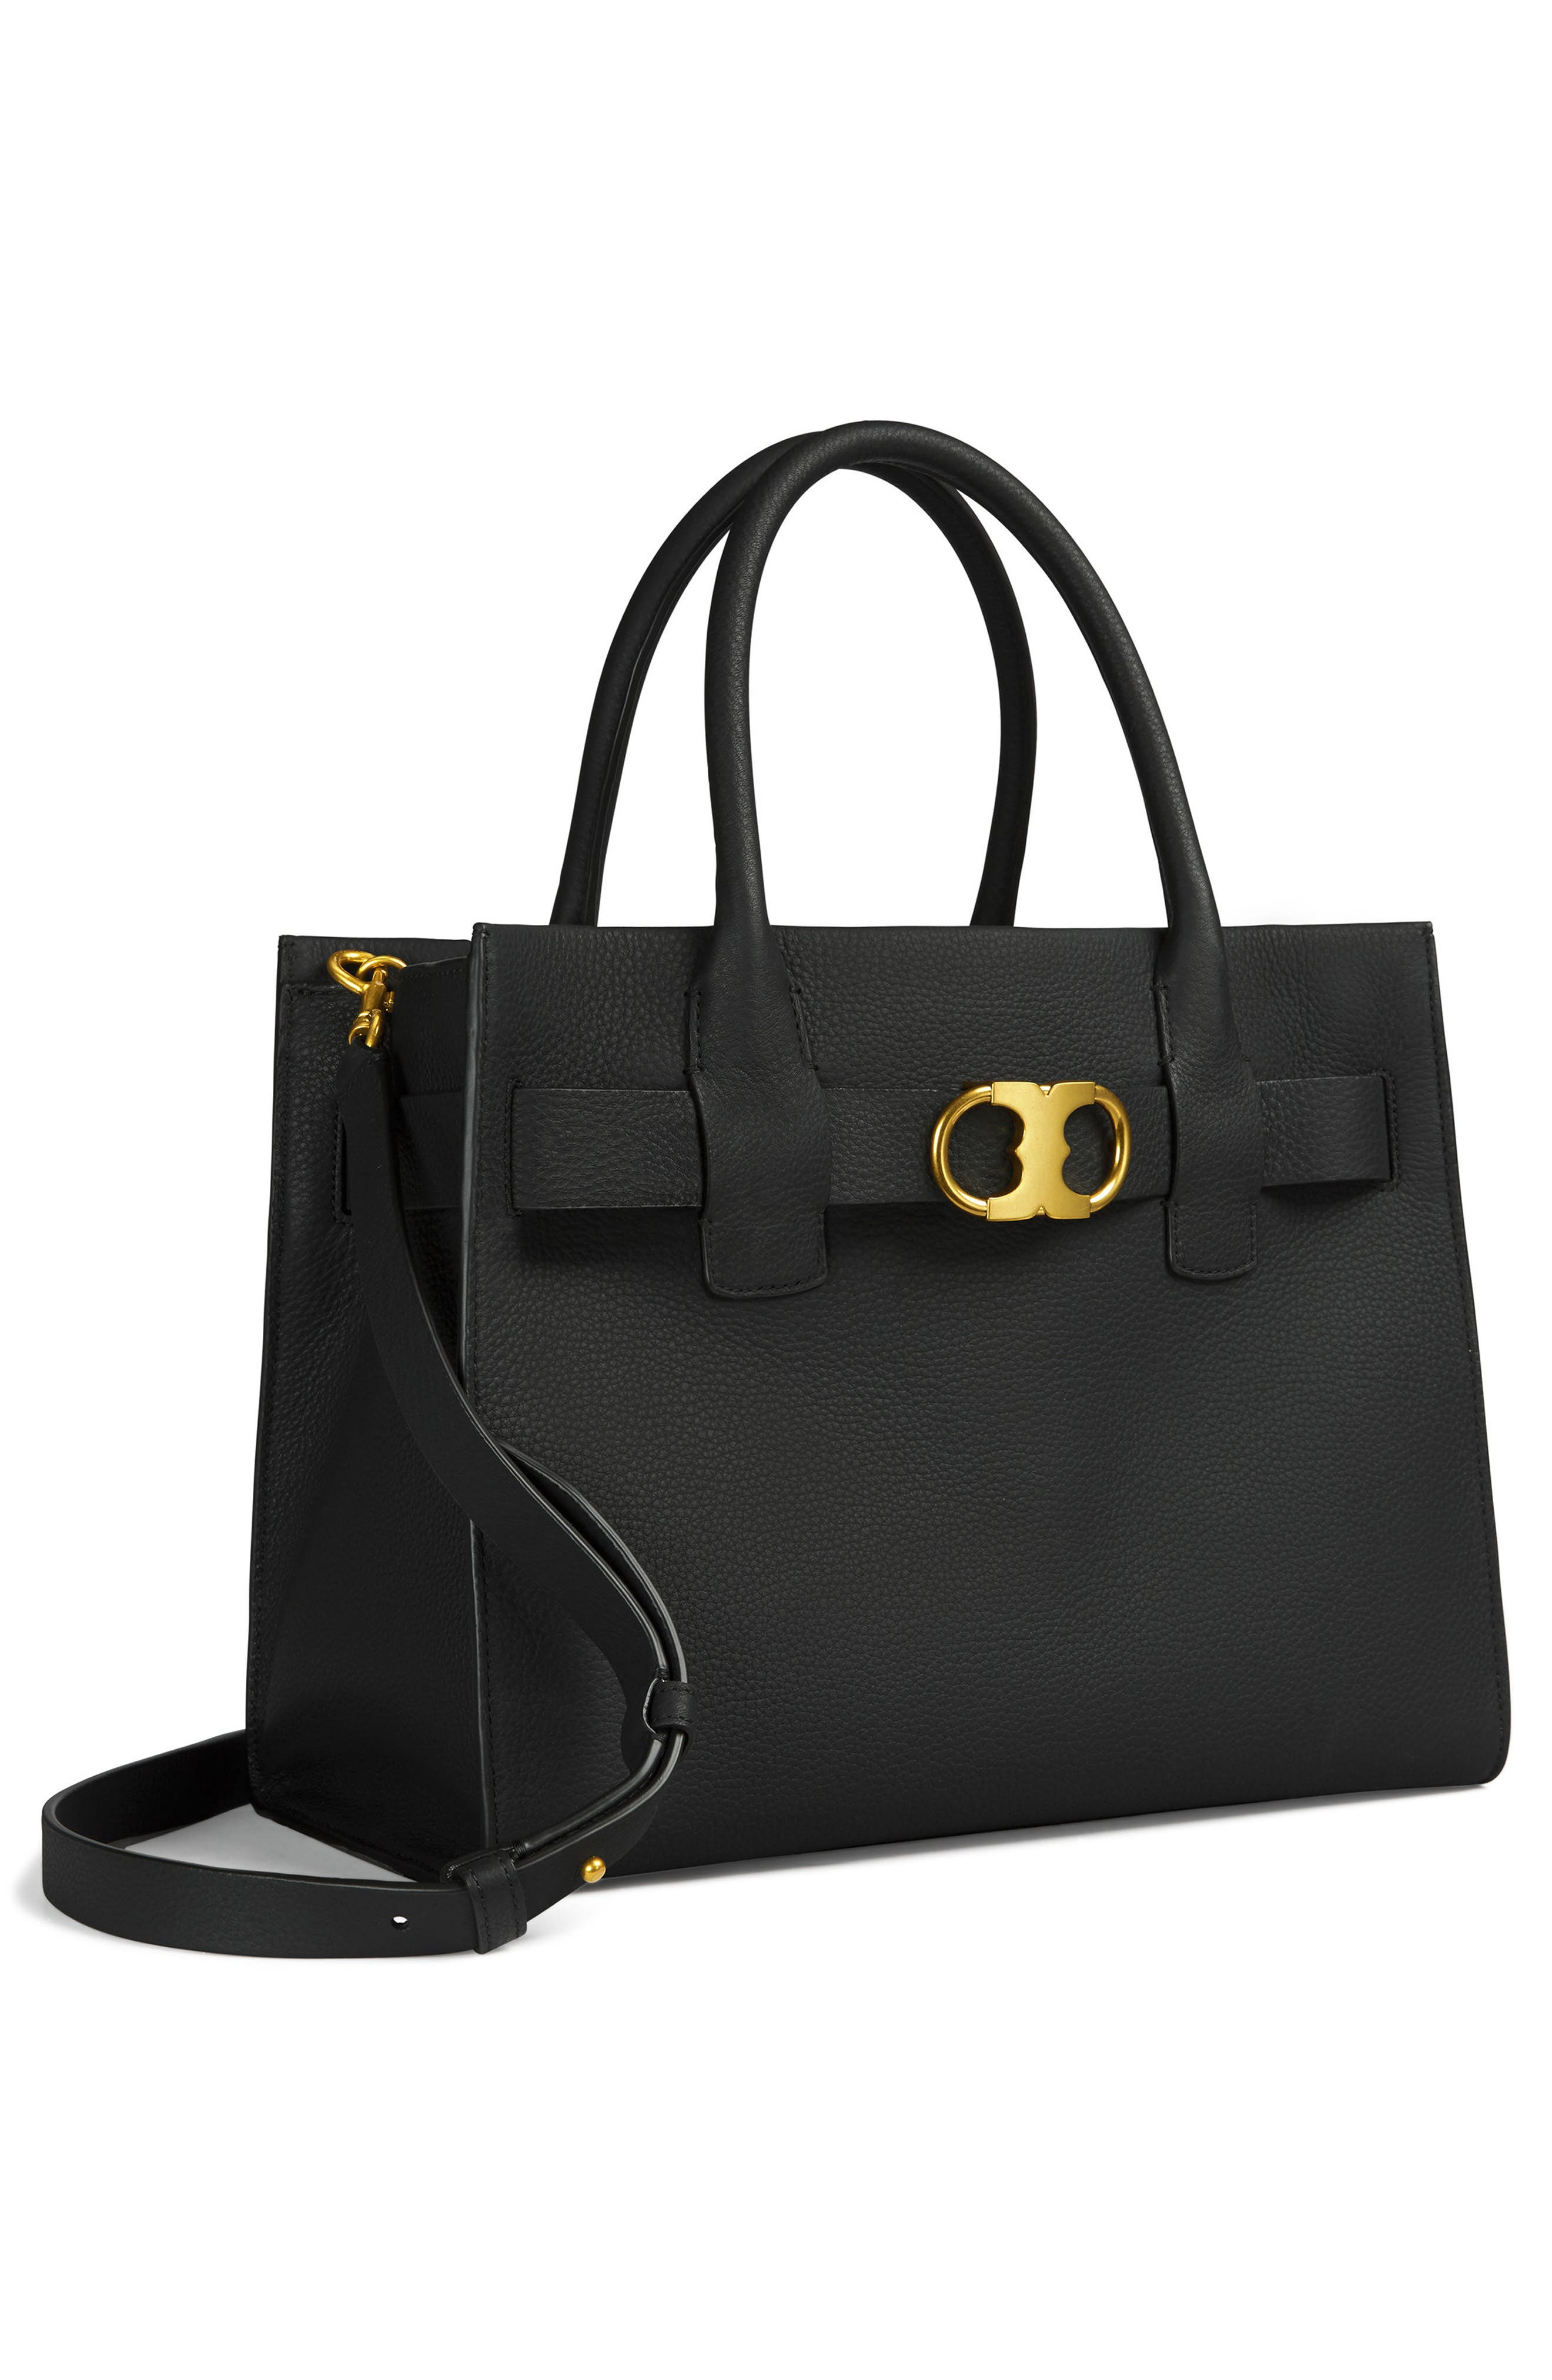 TORY BURCH,                             Gemini Link Leather Tote,                             Alternate thumbnail 6, color,                             001